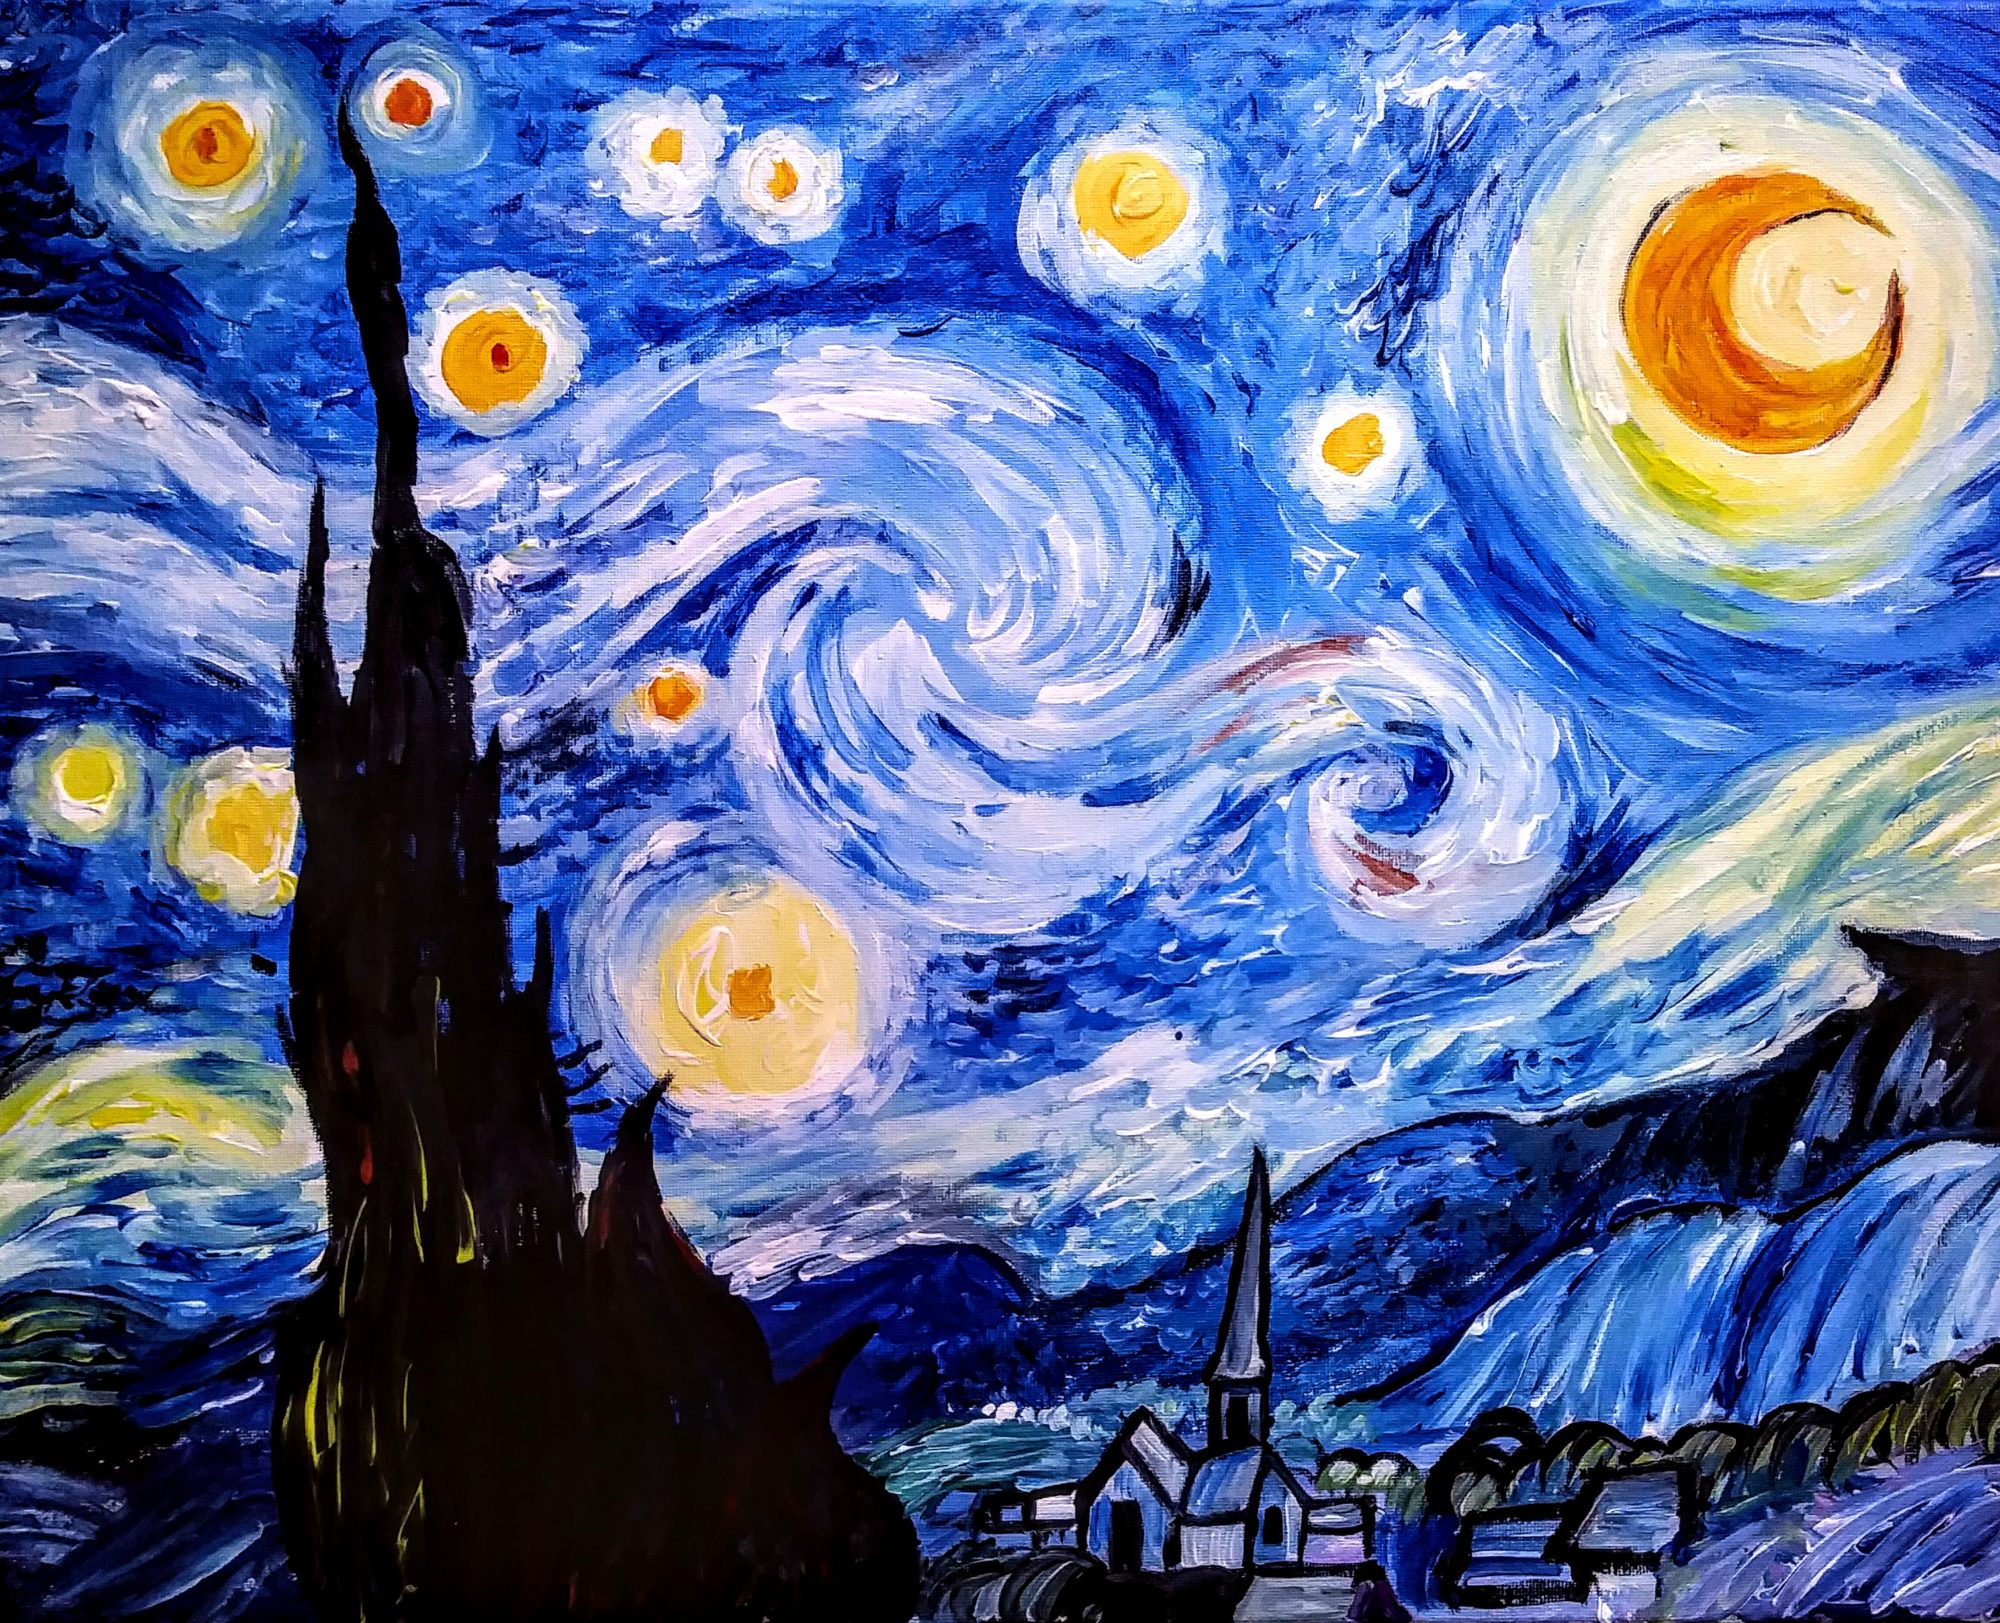 A92 Starry Night - Sip and Paint Parties in Bartlett, IL